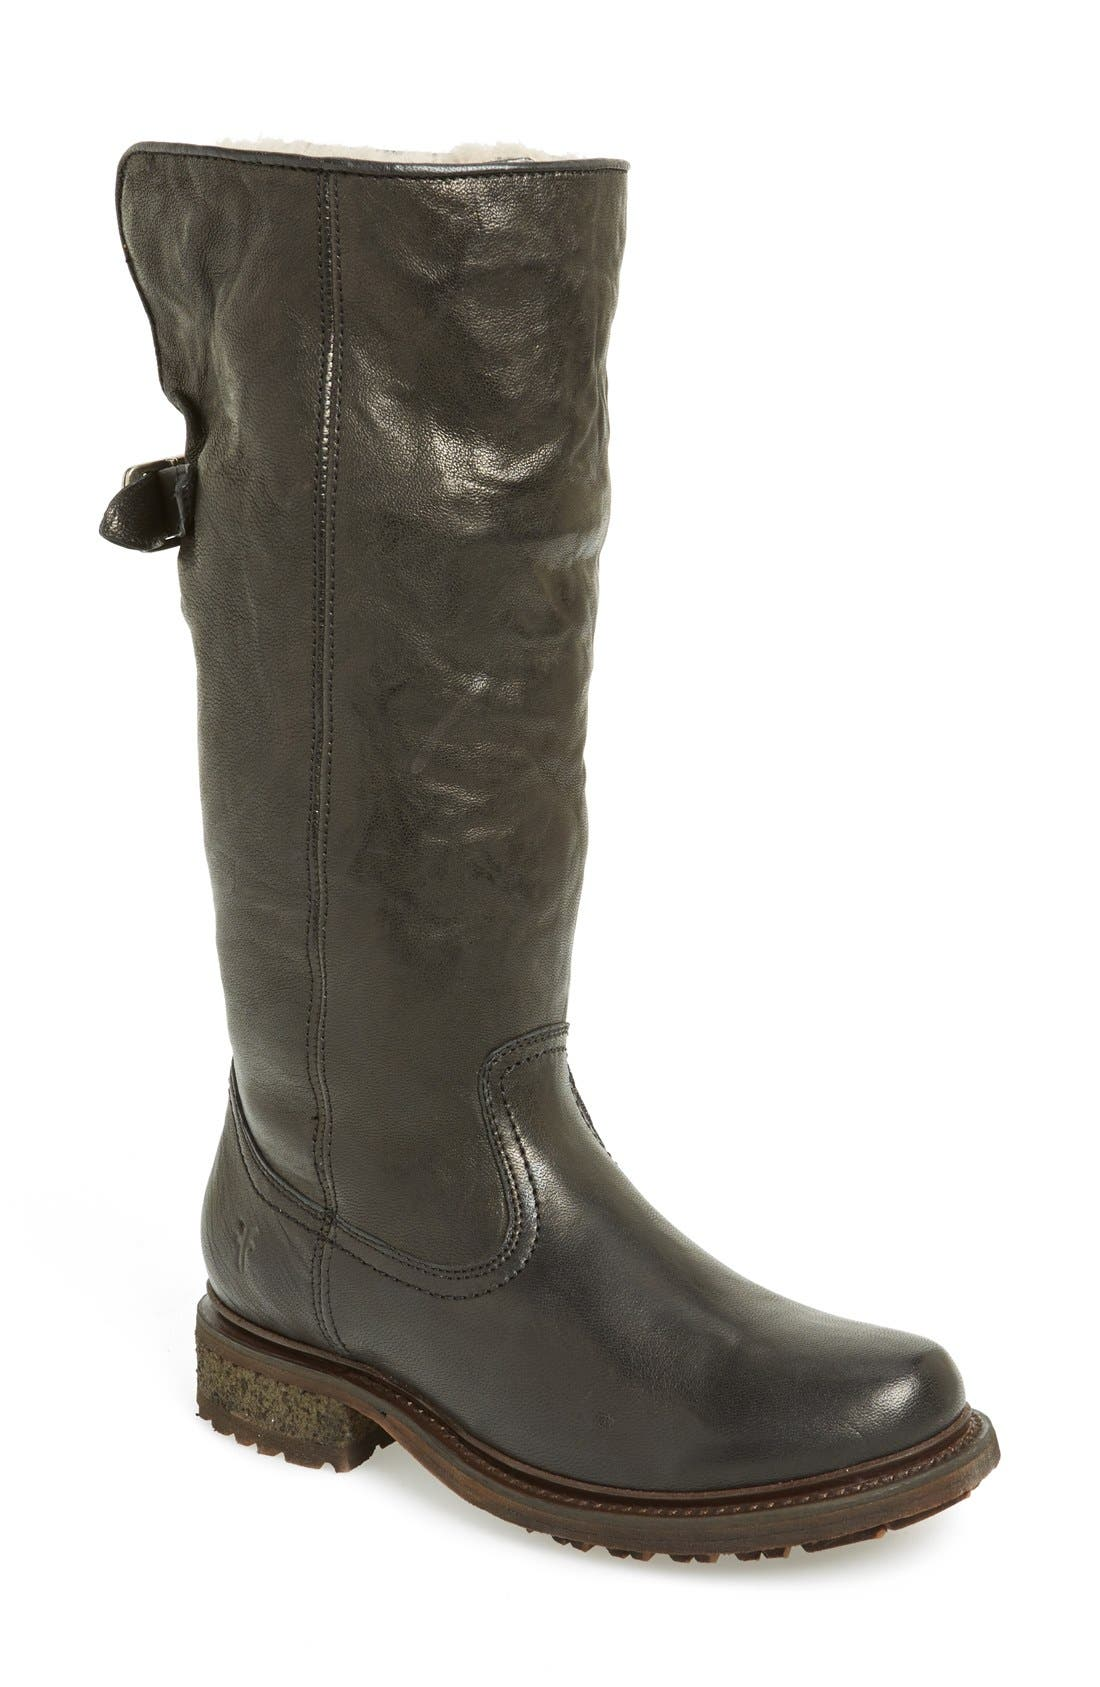 Main Image - Frye 'Valerie' Pull On Shearling Boot (Women)